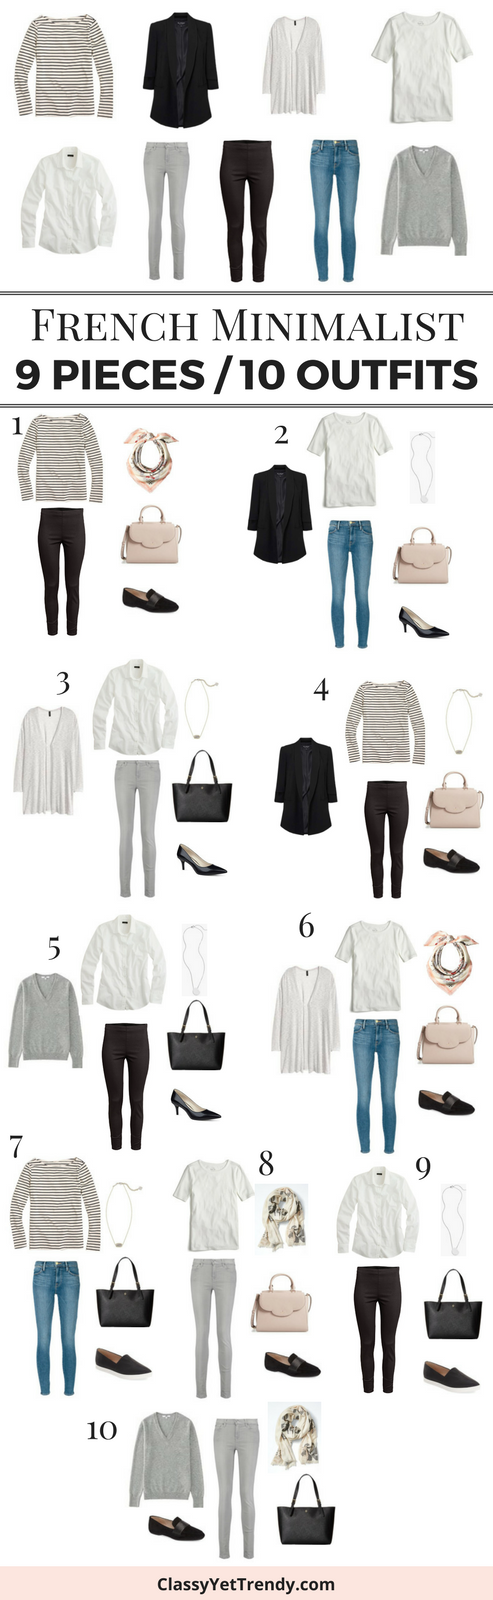 Secrets of your wardrobe: basic types of clothes